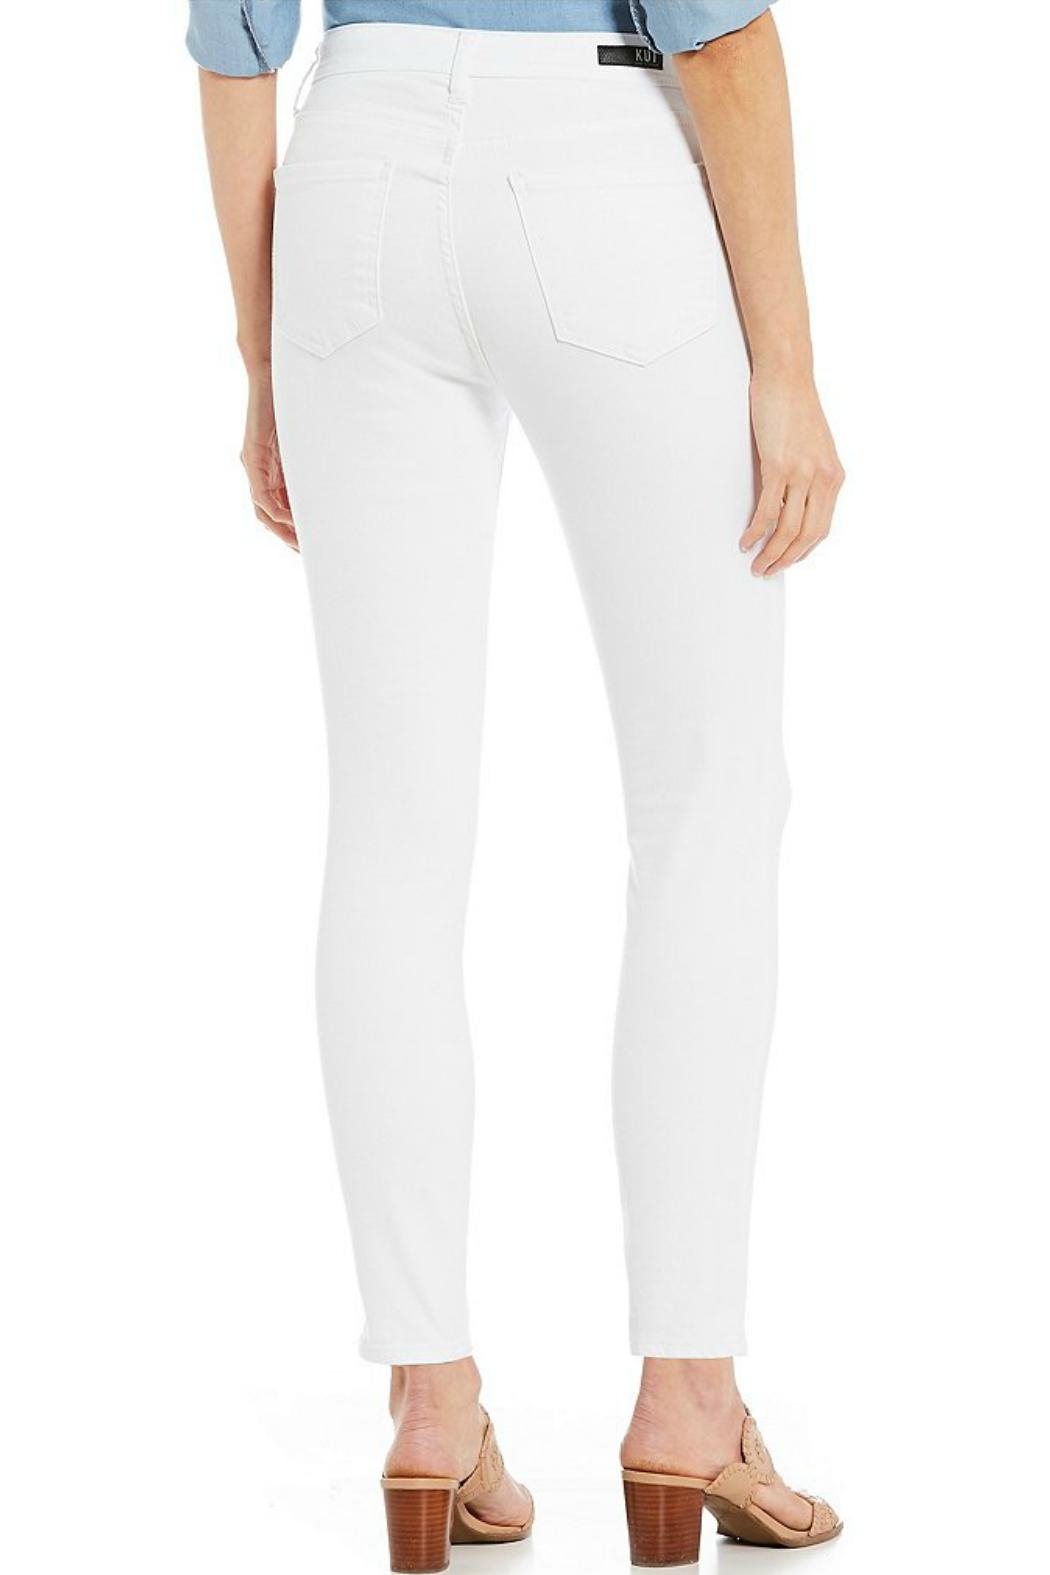 Kut from the Kloth High-Rise Ankle-Skinny Jeans - Front Full Image